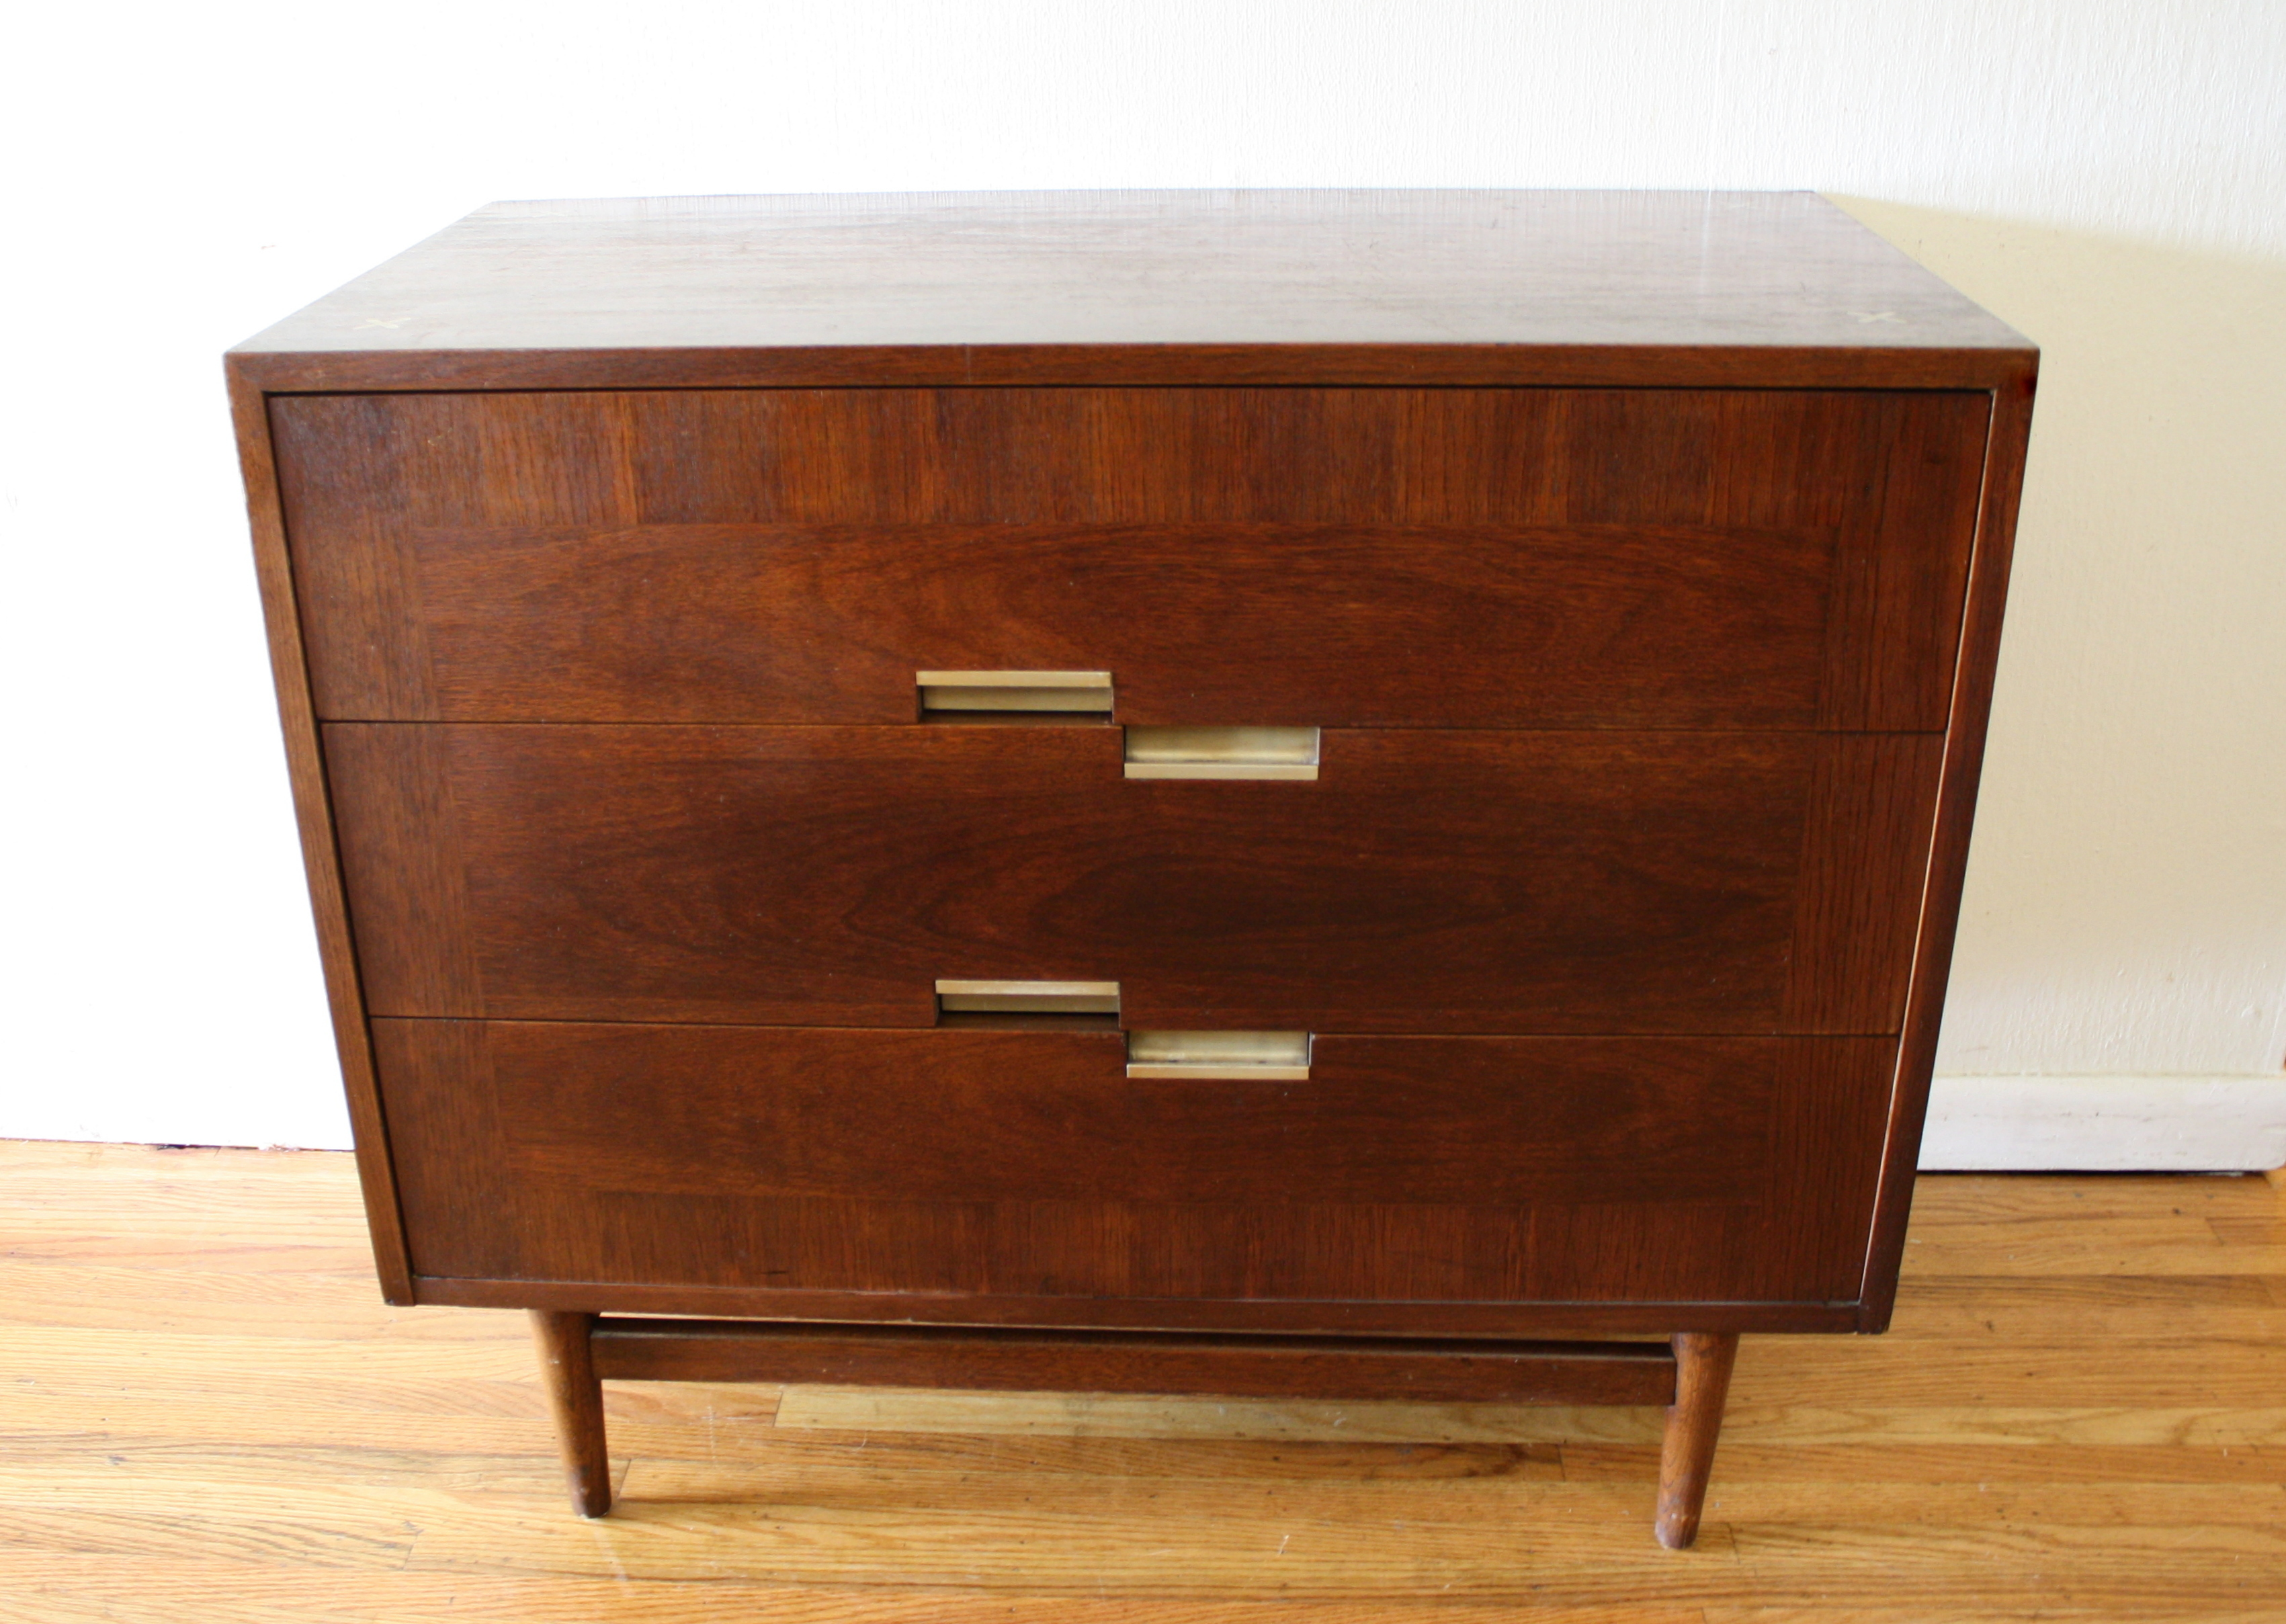 sold drawers fullxfull vintage pulls cabinet listing wood necessaryjewelry modern handles century solid mid by il drawer